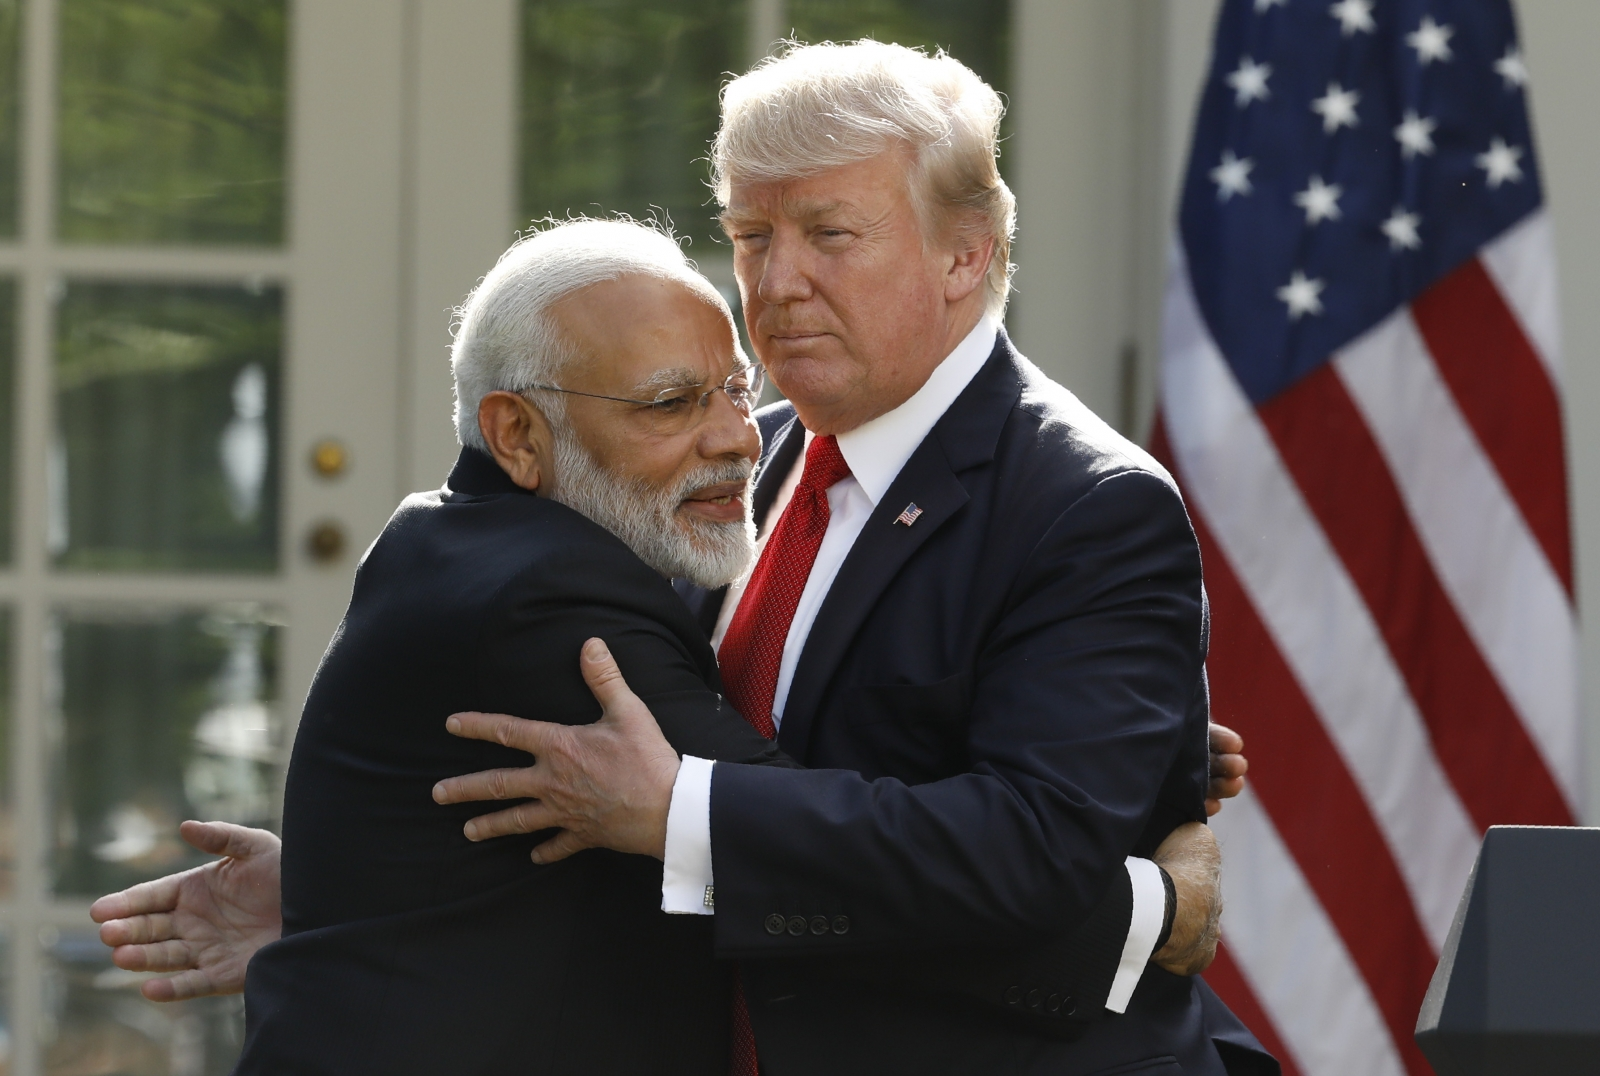 Trump said that him and Modi are world leaders in social media